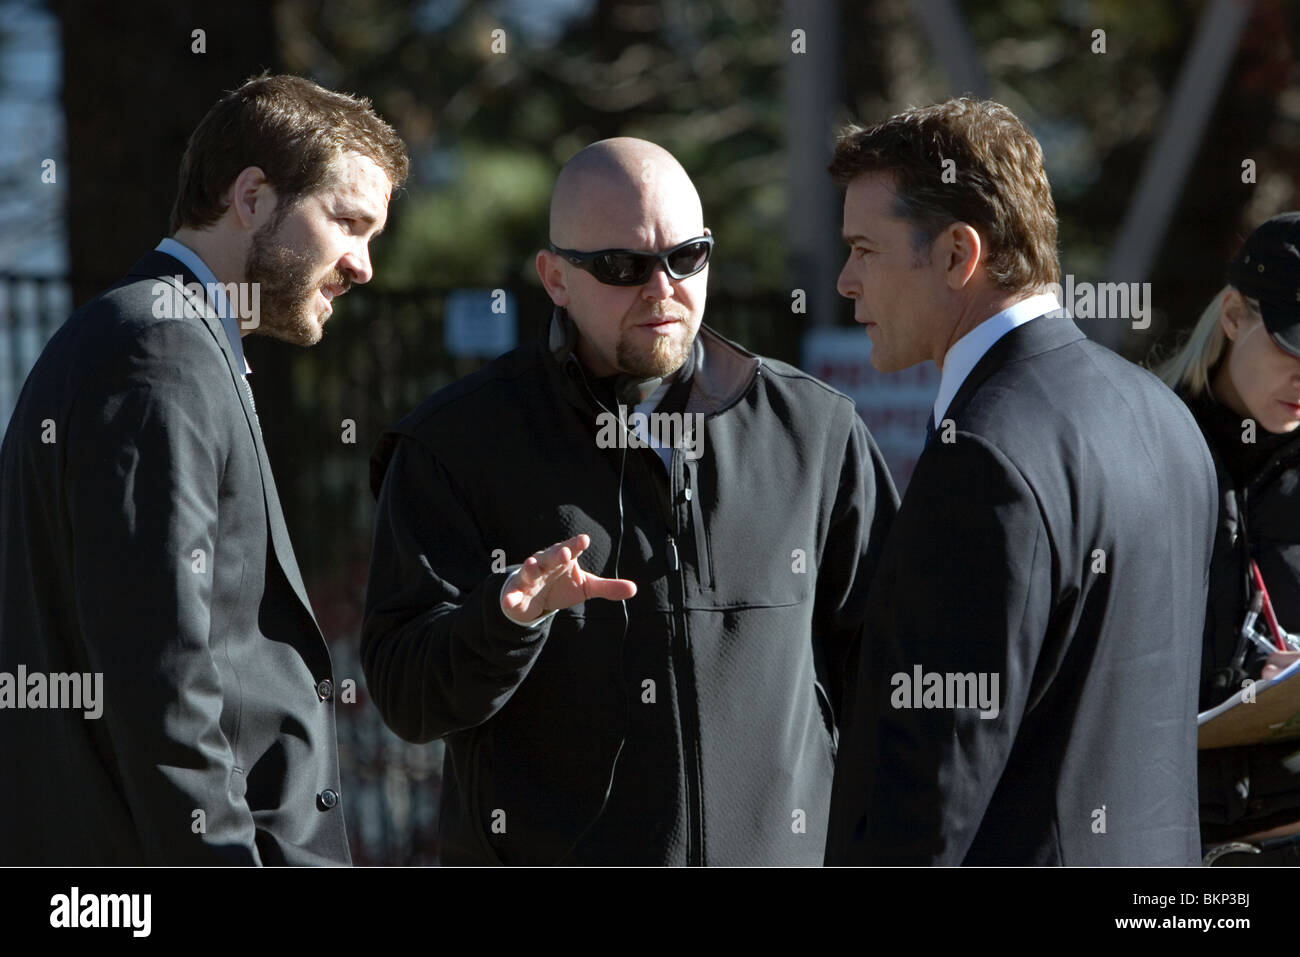 ON SET (ALT) FILMING (ALT) O/S 'SMOKIN' ACES' RYAN REYNOLDS, JOE CARNAHAN (DIR), RAY LIOTTA ACES 001 - Stock Image